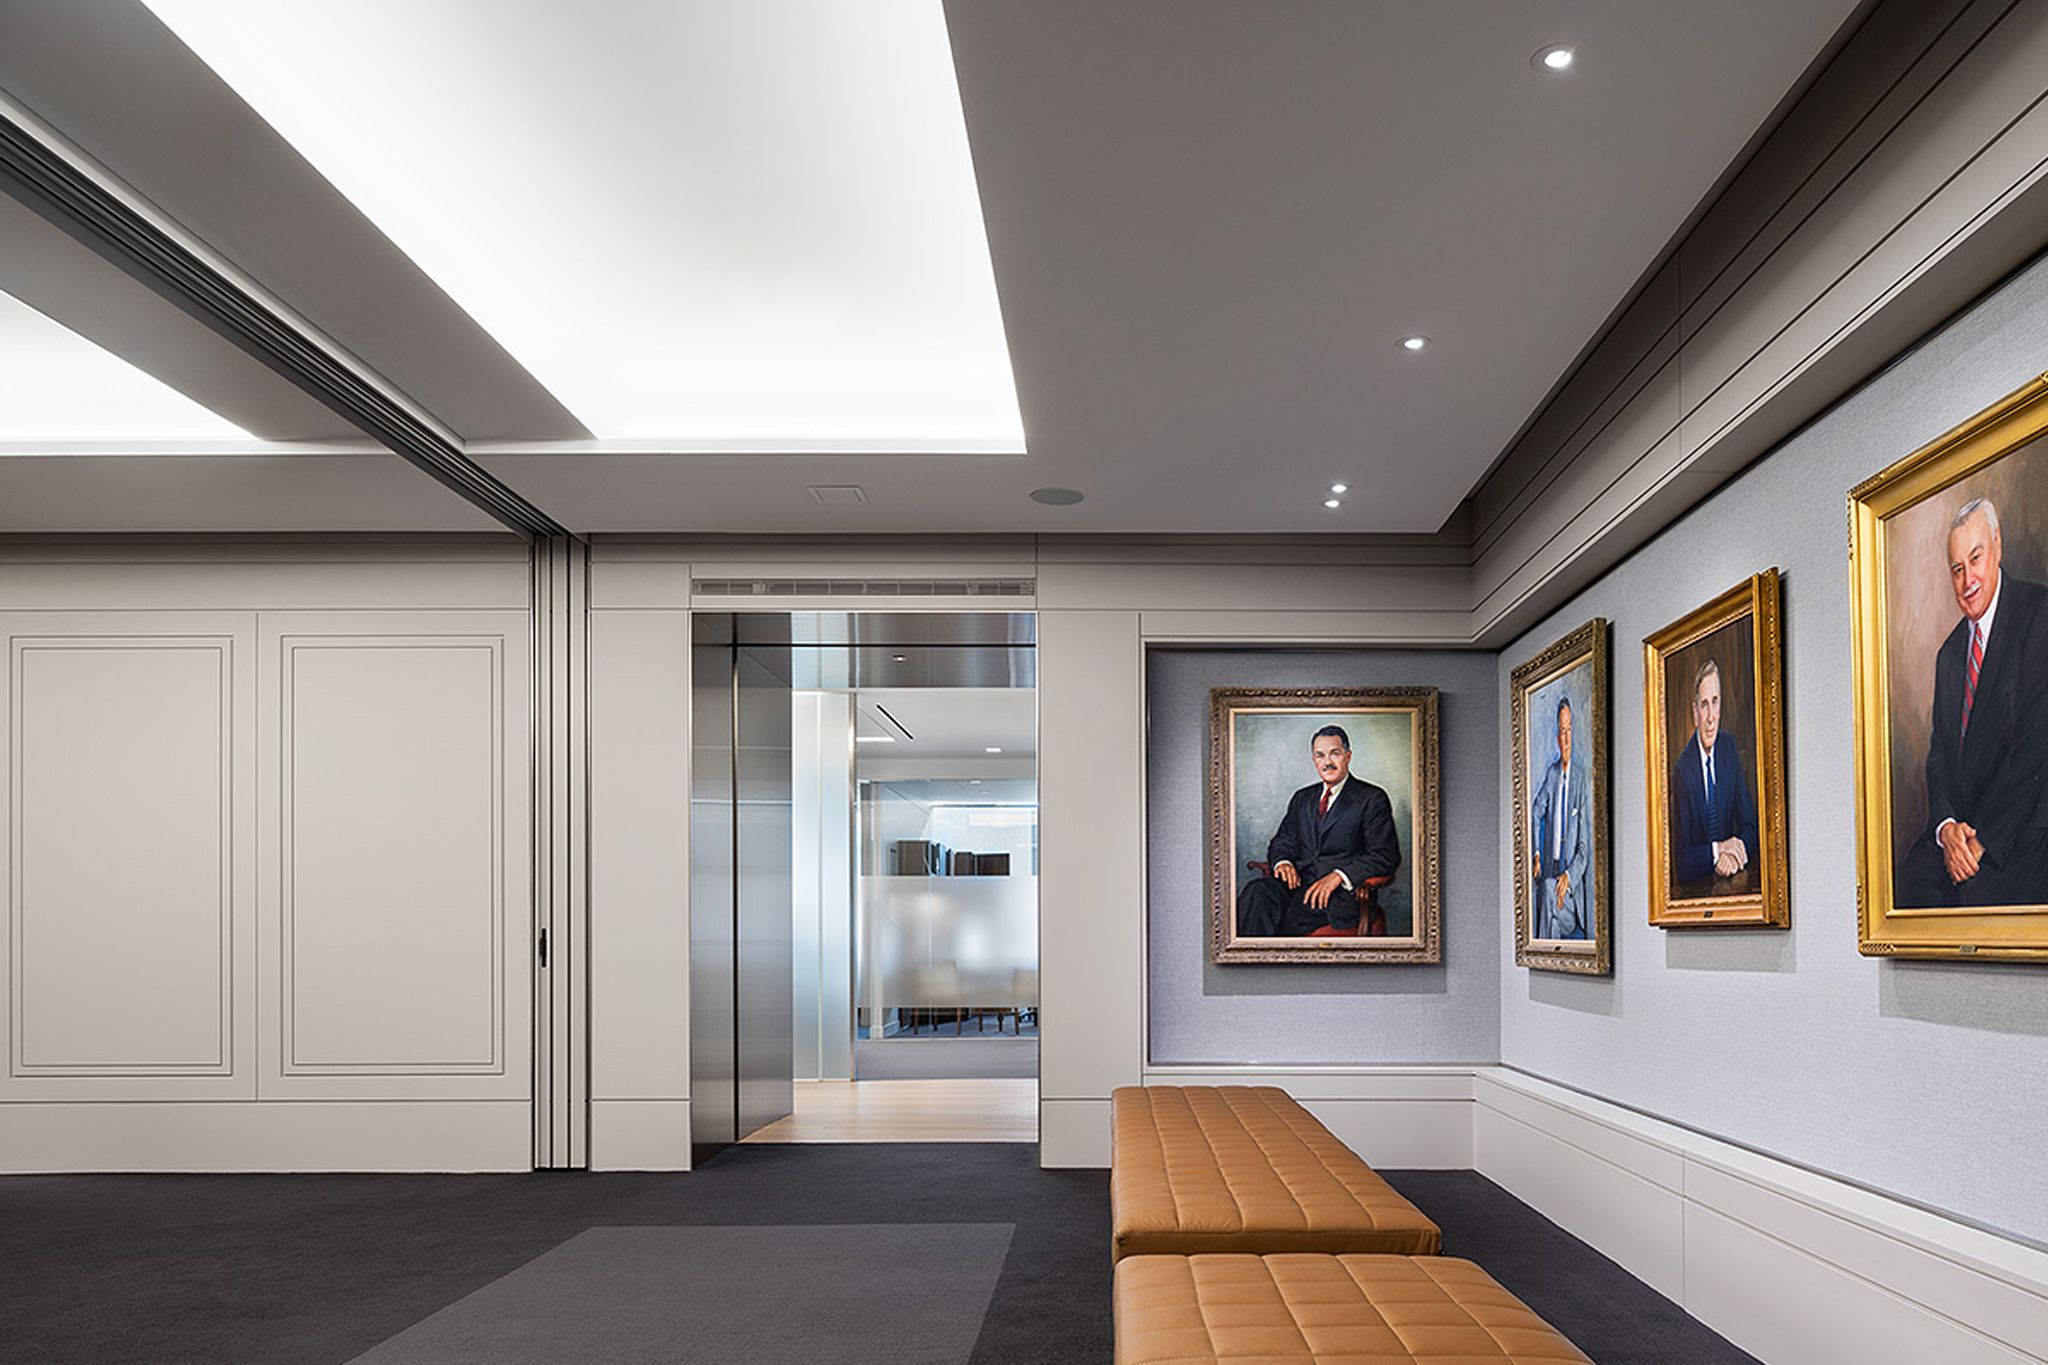 New York Ny Through Close Collaboration With The Turner Construction Company Fogarty Finger Provided A Design For Their Interior Architecture Interior Design